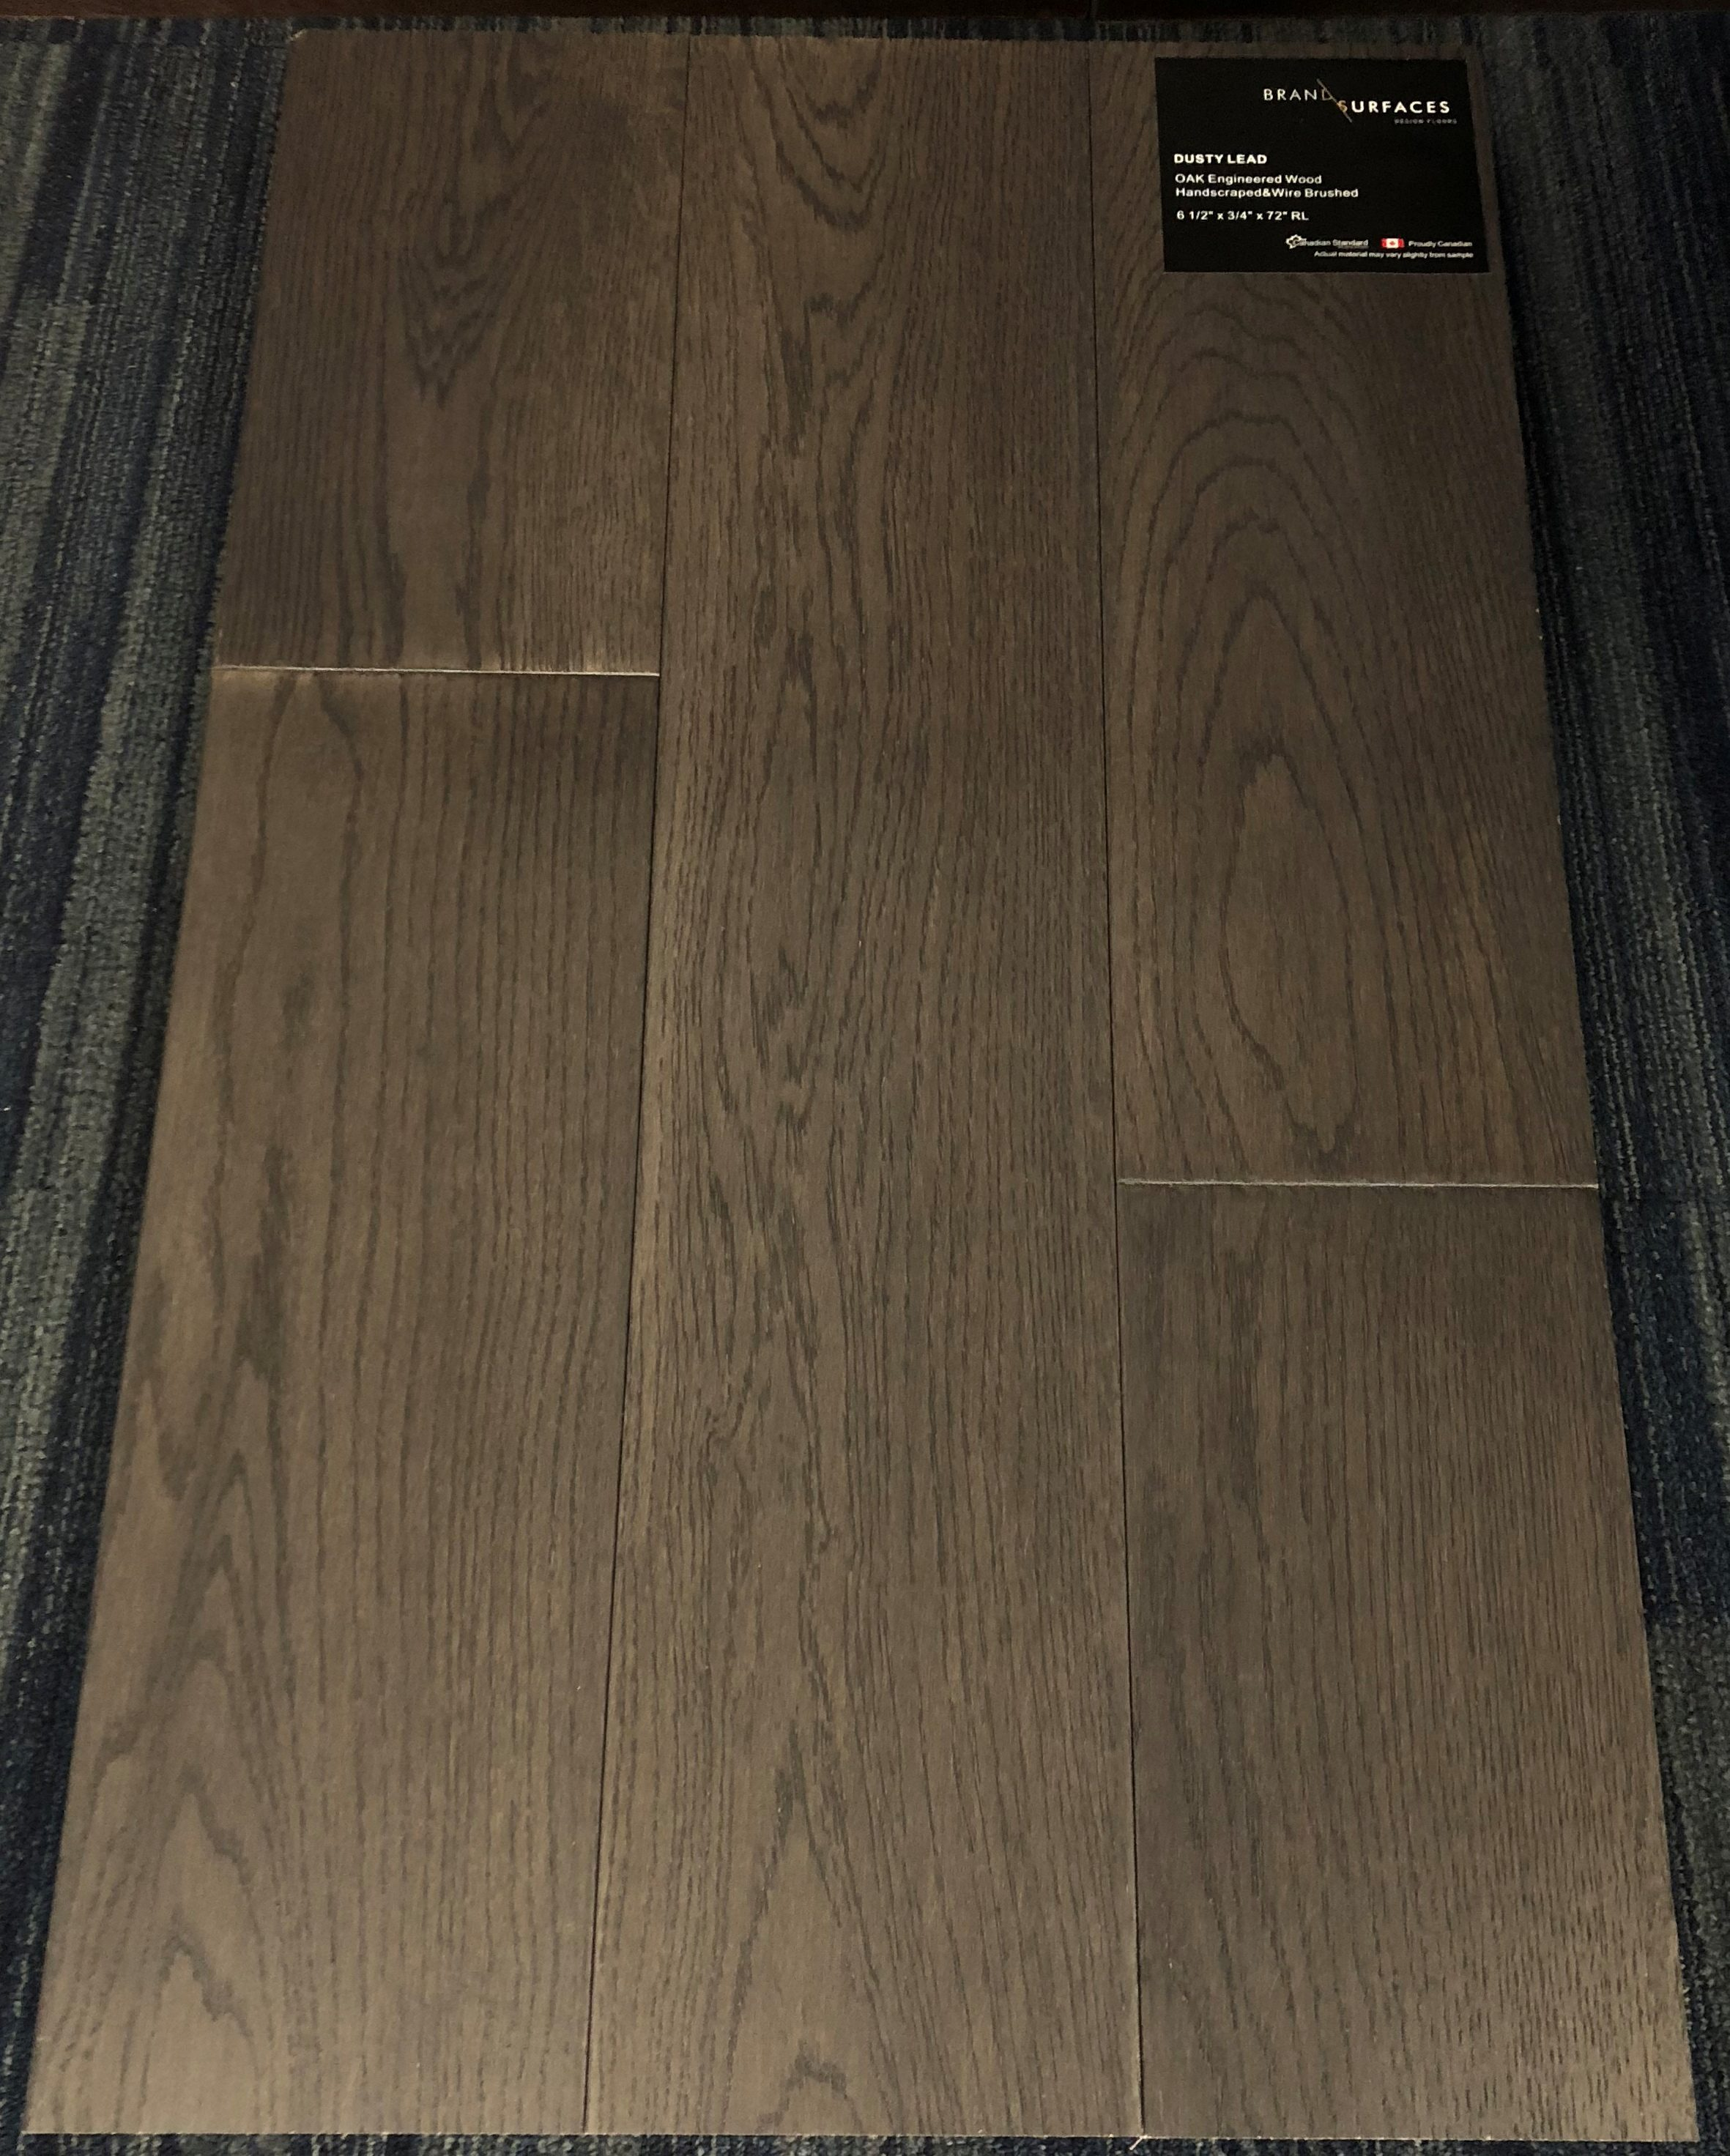 flooring in country maple natural me goodfellow prefinished hardwood floors ca view near stores w larger